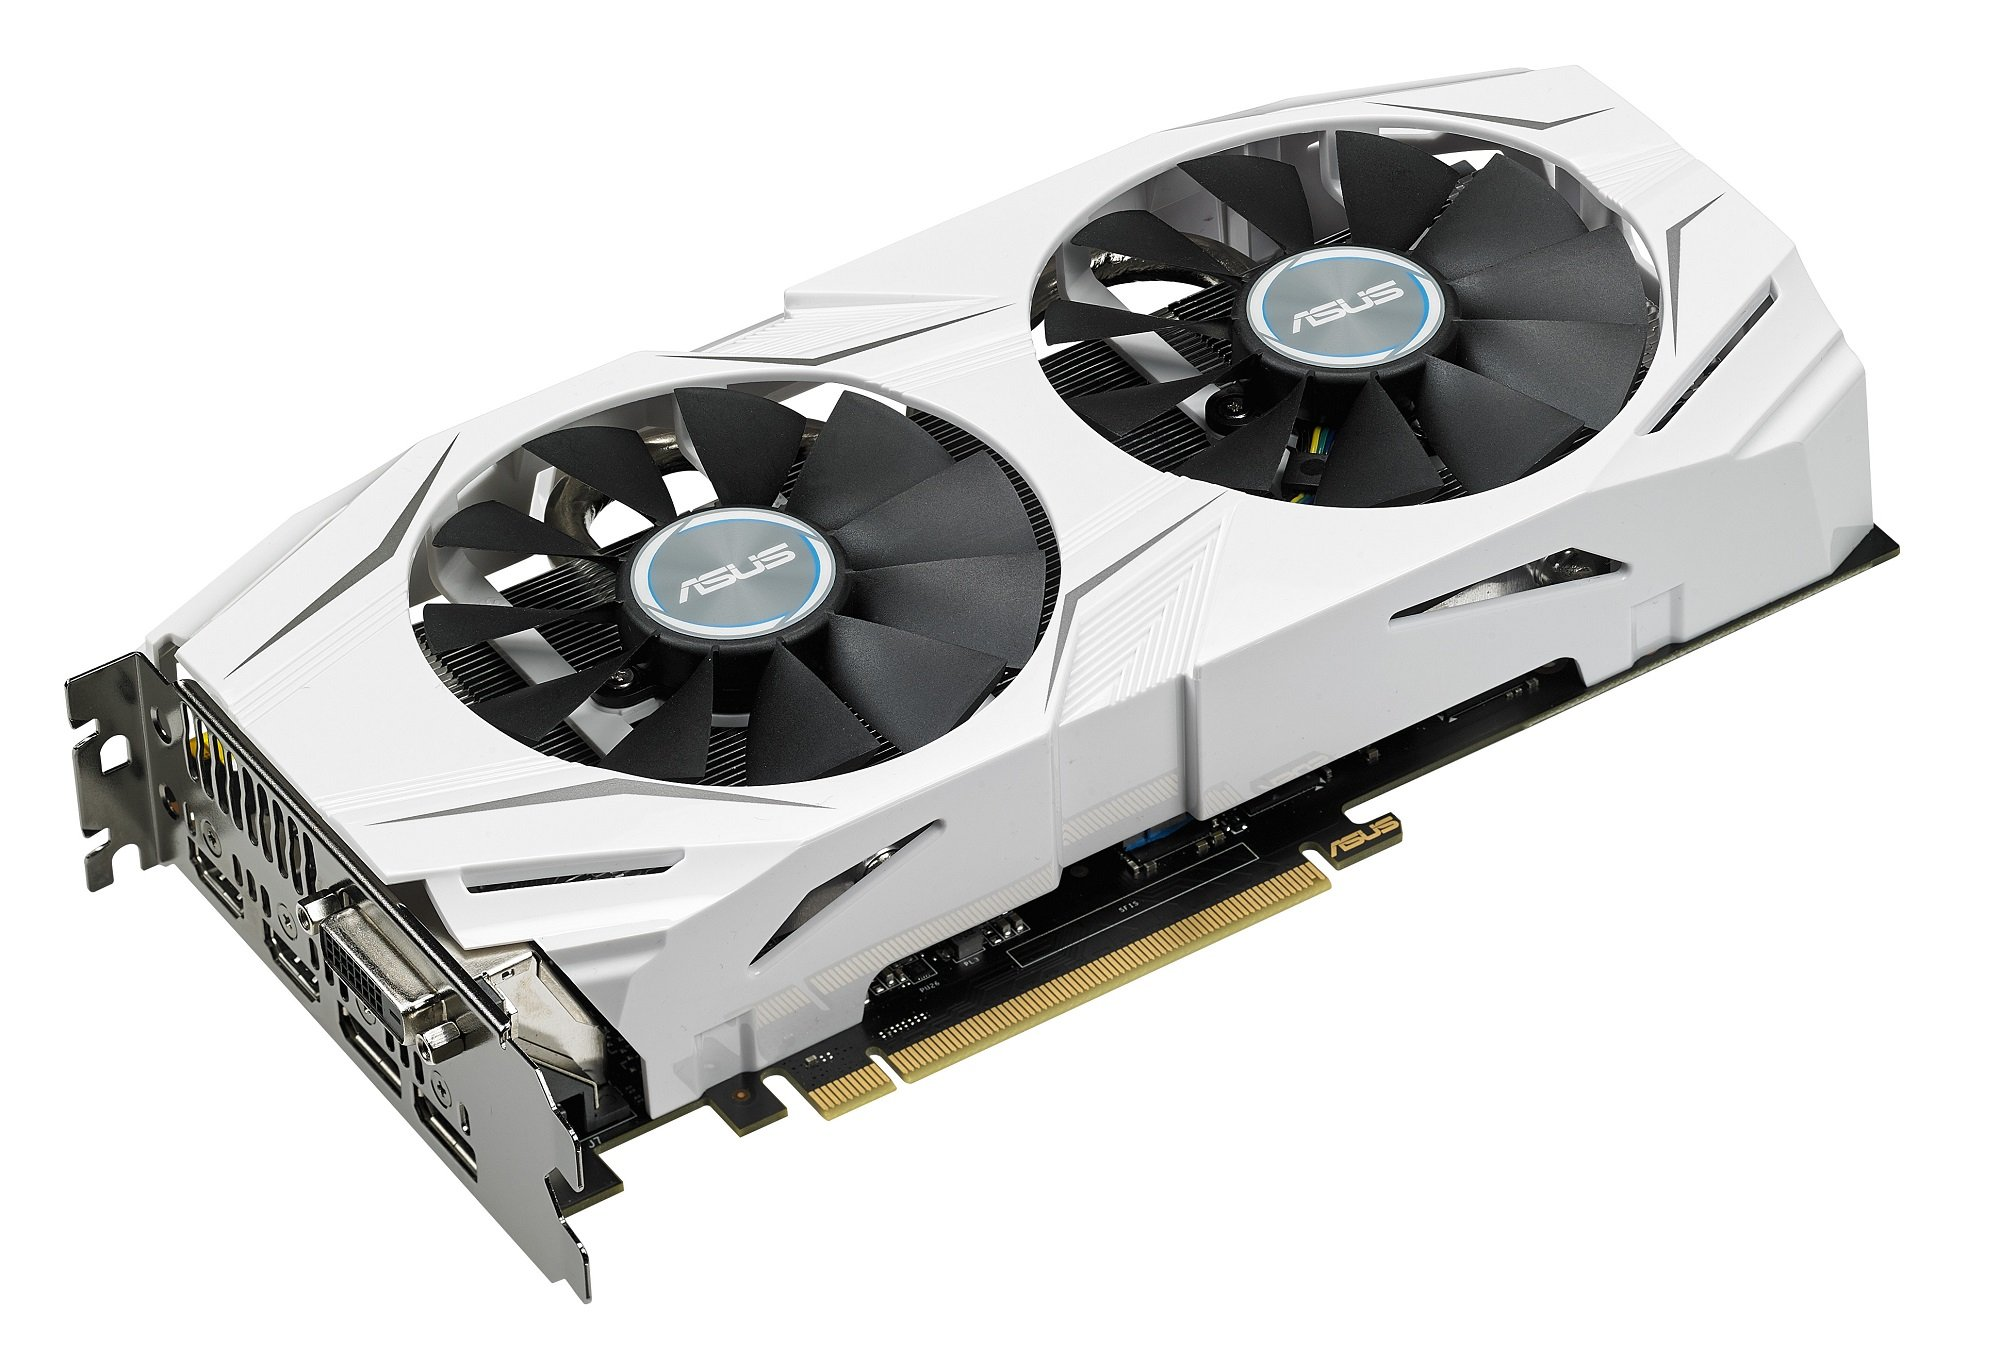 ASUS GeForce GTX 1060 6GB Dual-fan OC Edition VR Ready Dual HDMI DP 1.4 Gaming Graphics Card (DUAL-GTX1060-O6G) by Asus (Image #3)